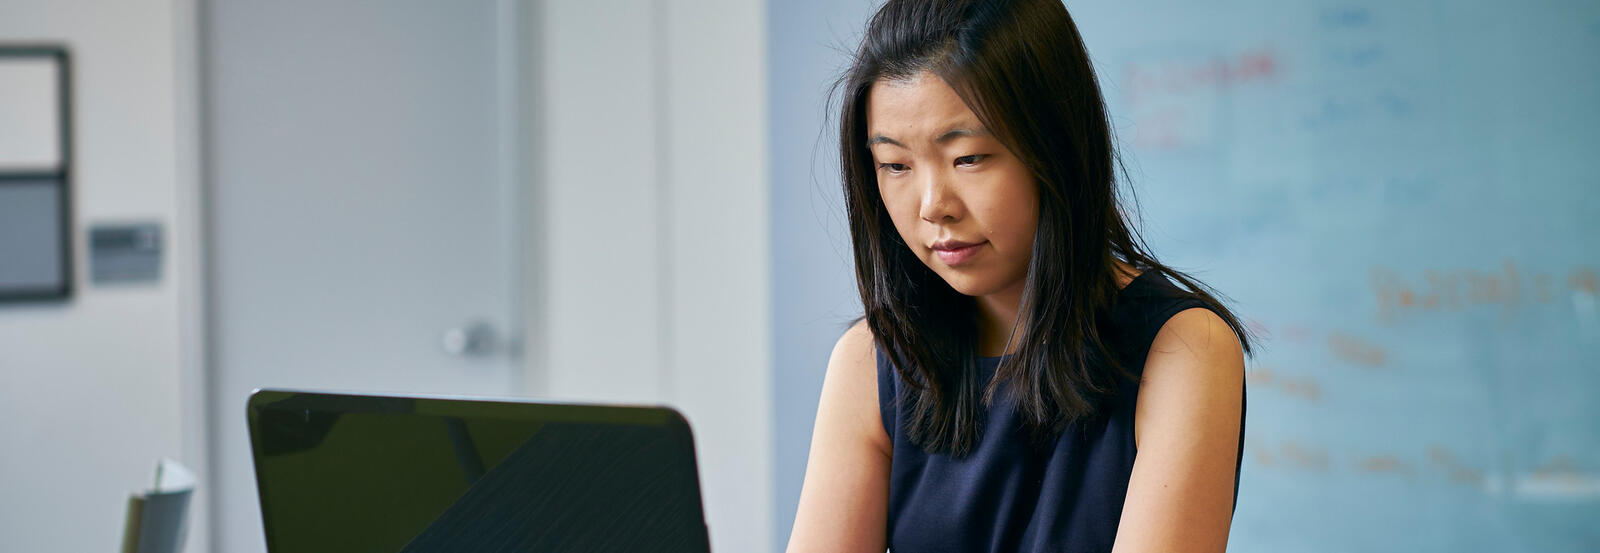 Close up of female student in business casual working on a laptop